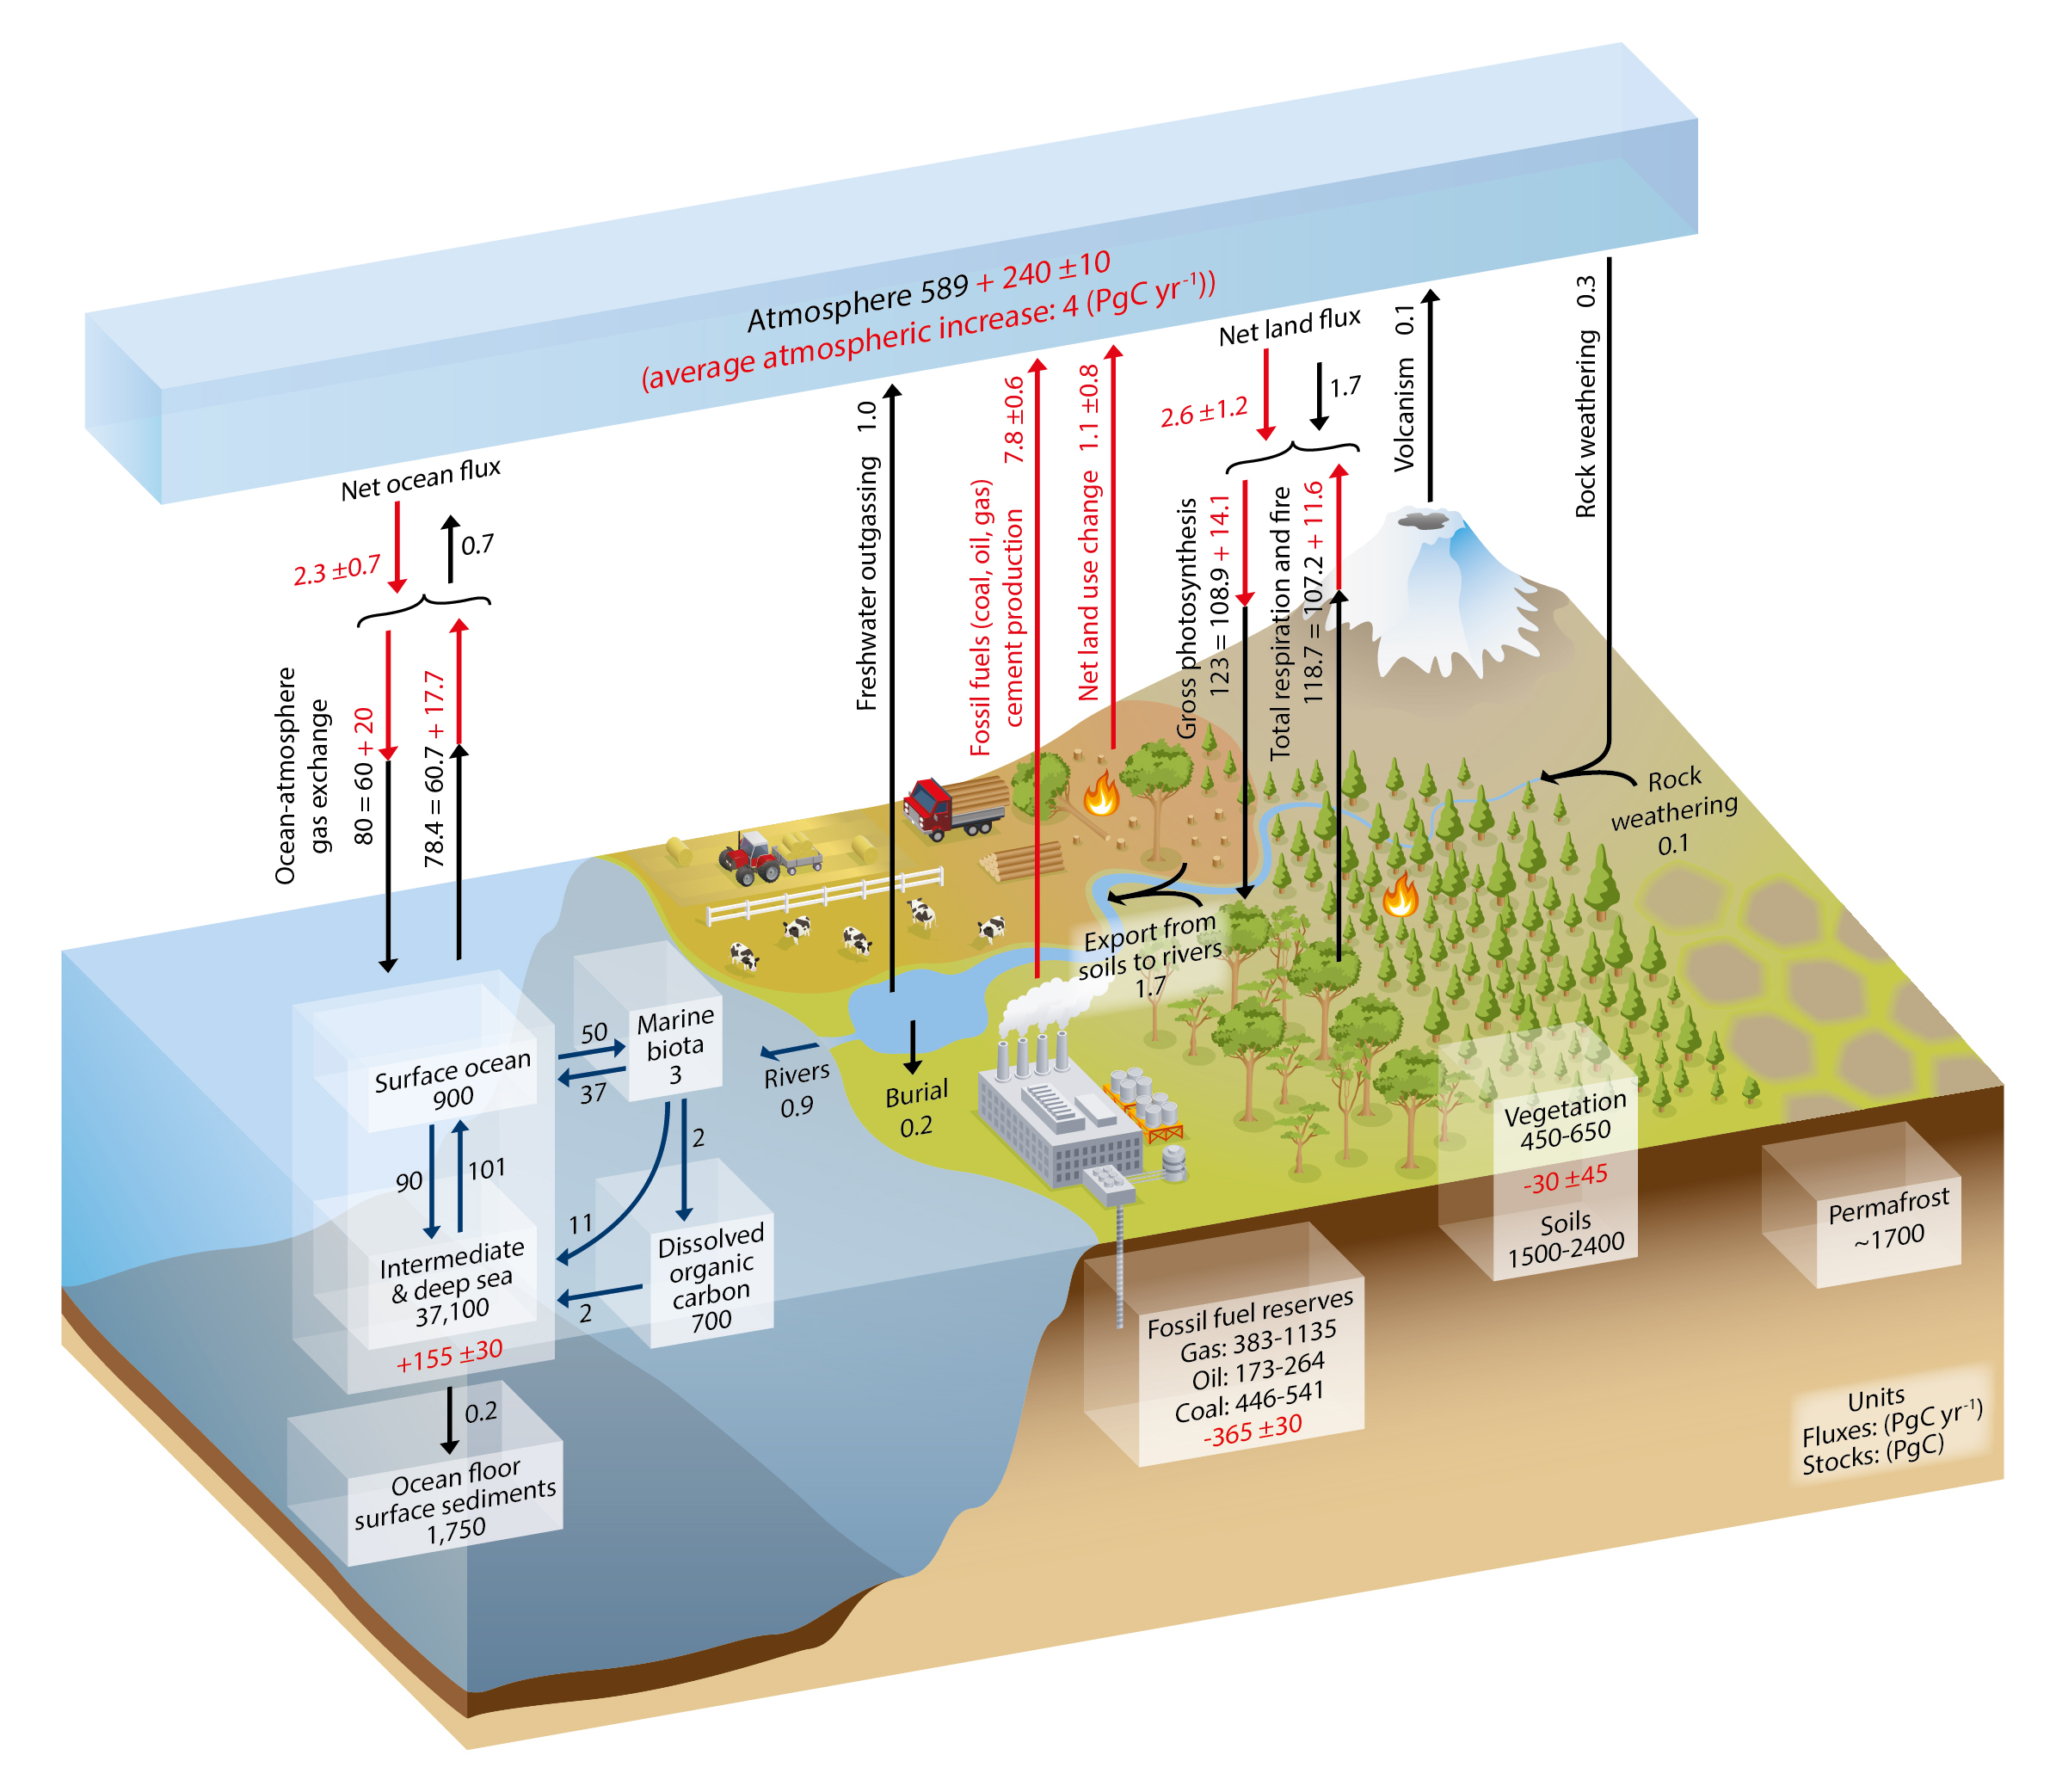 The Carbon Cycle. Numbers in boxes represent reservoir mass, also called carbon stocks, inventories, or storage in PgC (1 Pg = 1015g = 1 Gt). 2.1 PgC = 1 ppm atmospheric CO2. Numbers next to arrows indicate fluxes in PgC/yr. Black numbers and arrows represent estimates of the natural (pre-industrial) carbon cycle. Red numbers and arrows indicate estimates of anthropogenic effects for 2000-2009. From Ciais et al. (2013). Image from ipcc.ch. See additional material at the end of this chapter for a figure showing the sizes of the reservoirs and fluxes in proportion to the size of the boxes and arrows.